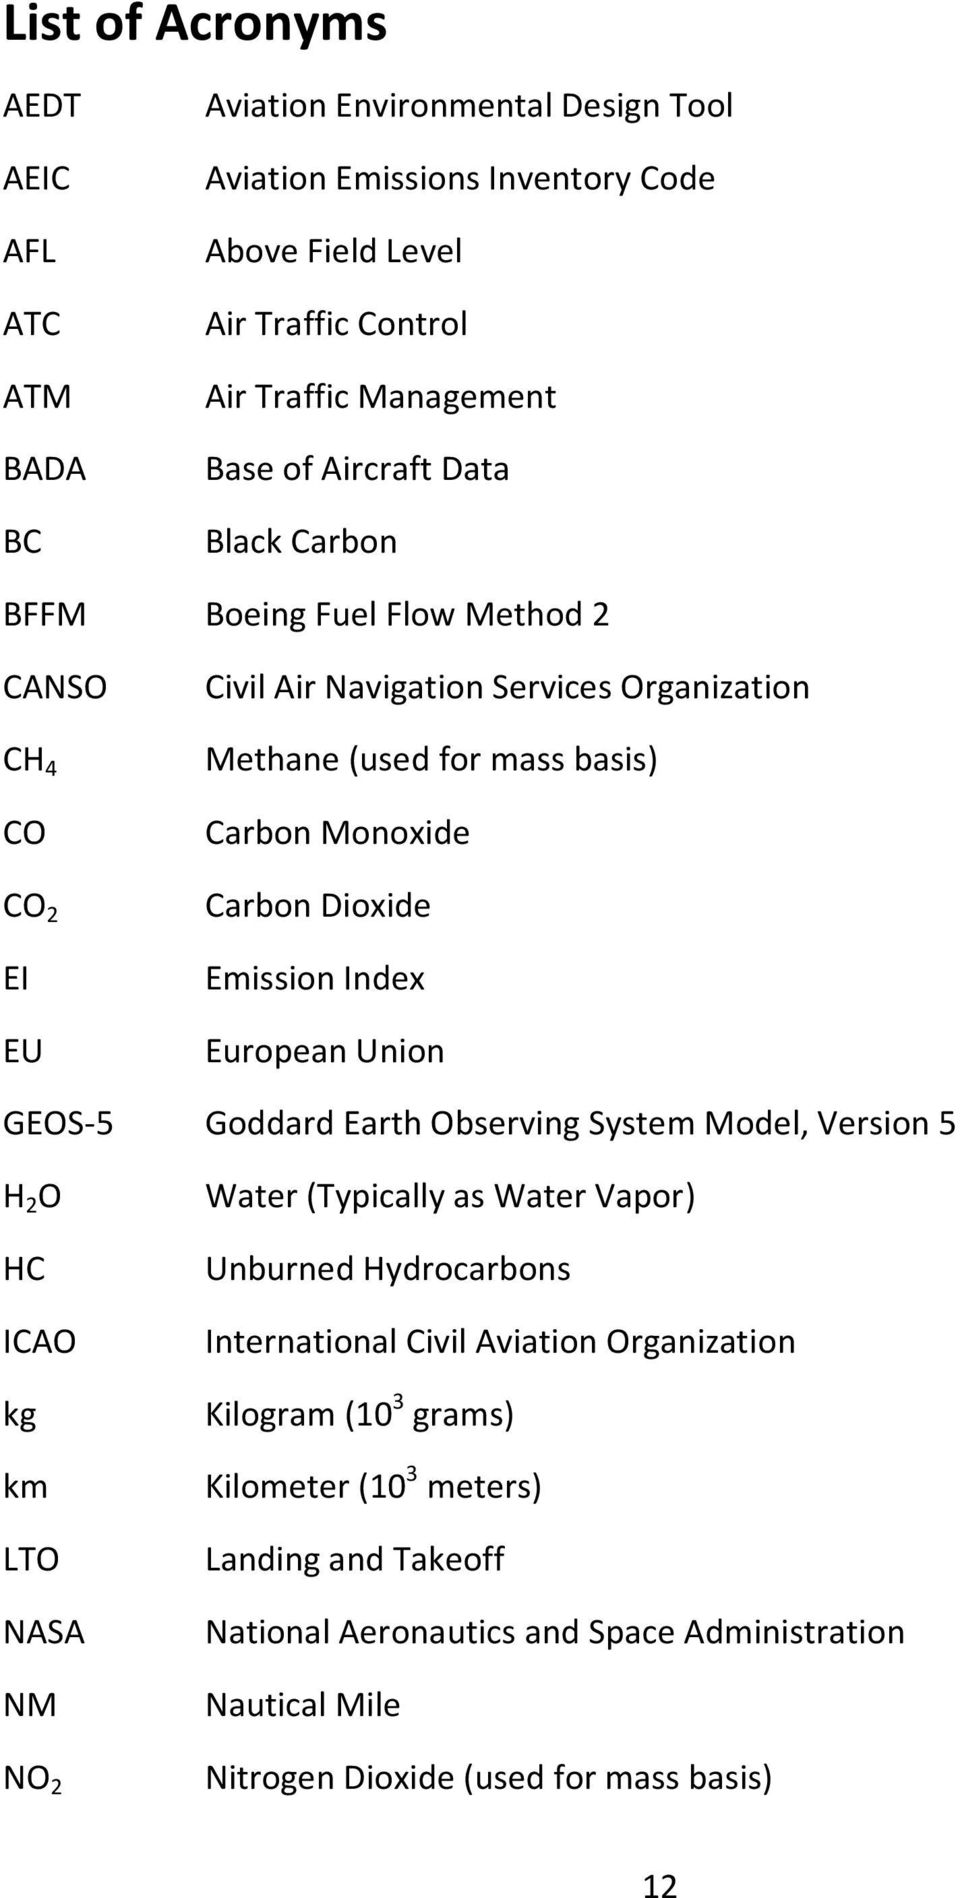 Emission Index European Union GEOS-5 Goddard Earth Observing System Model, Version 5 H 2 O HC ICAO kg km LTO NASA NM NO 2 Water (Typically as Water Vapor) Unburned Hydrocarbons